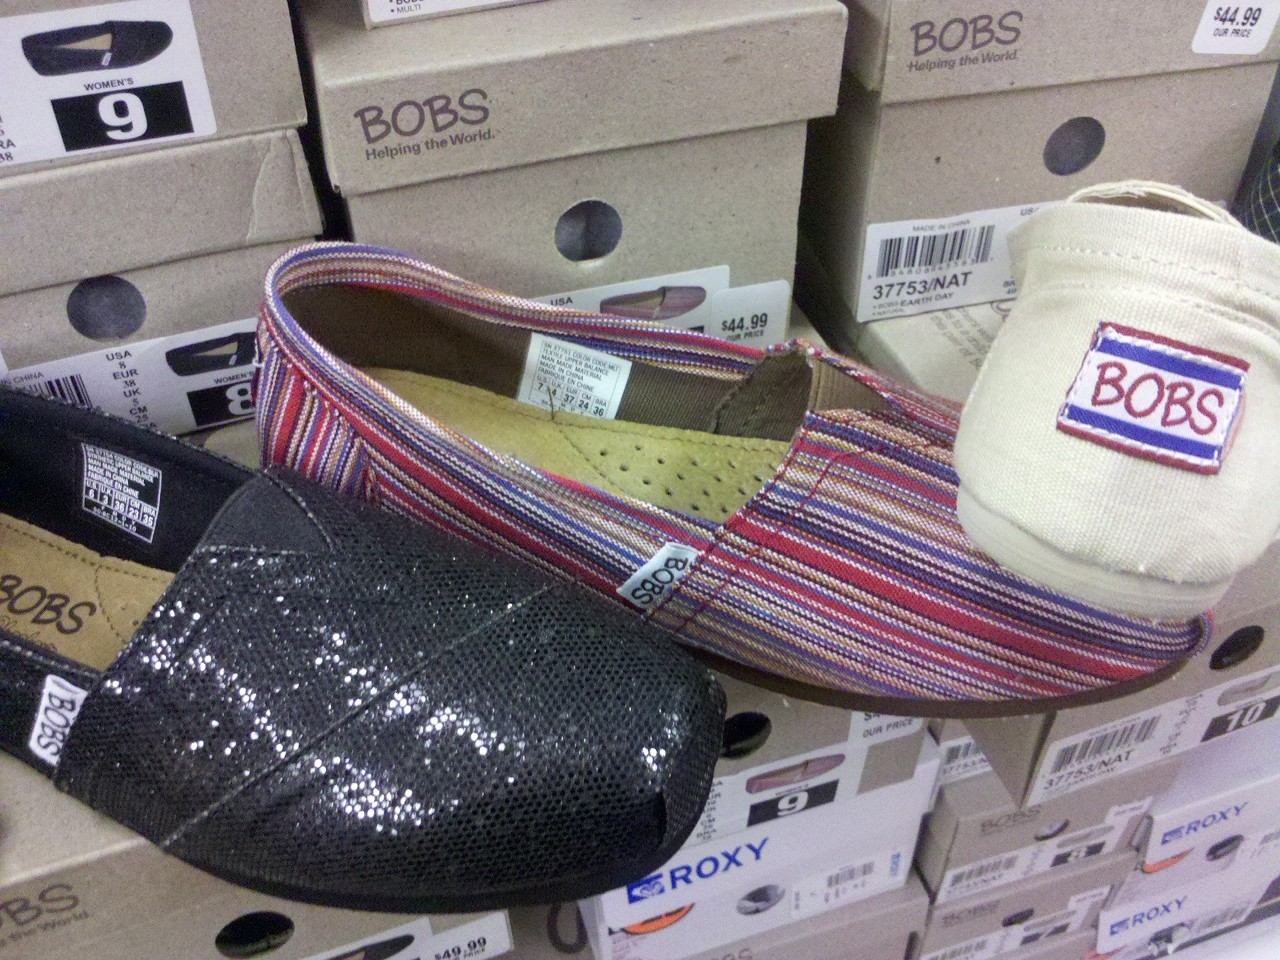 toms vs bobs 66 items  toms majorca peep toe bootie $545msrp: $109 desert wedge  blue by  betsey johnson(6) blundstone(6) bobs from skechers(15).